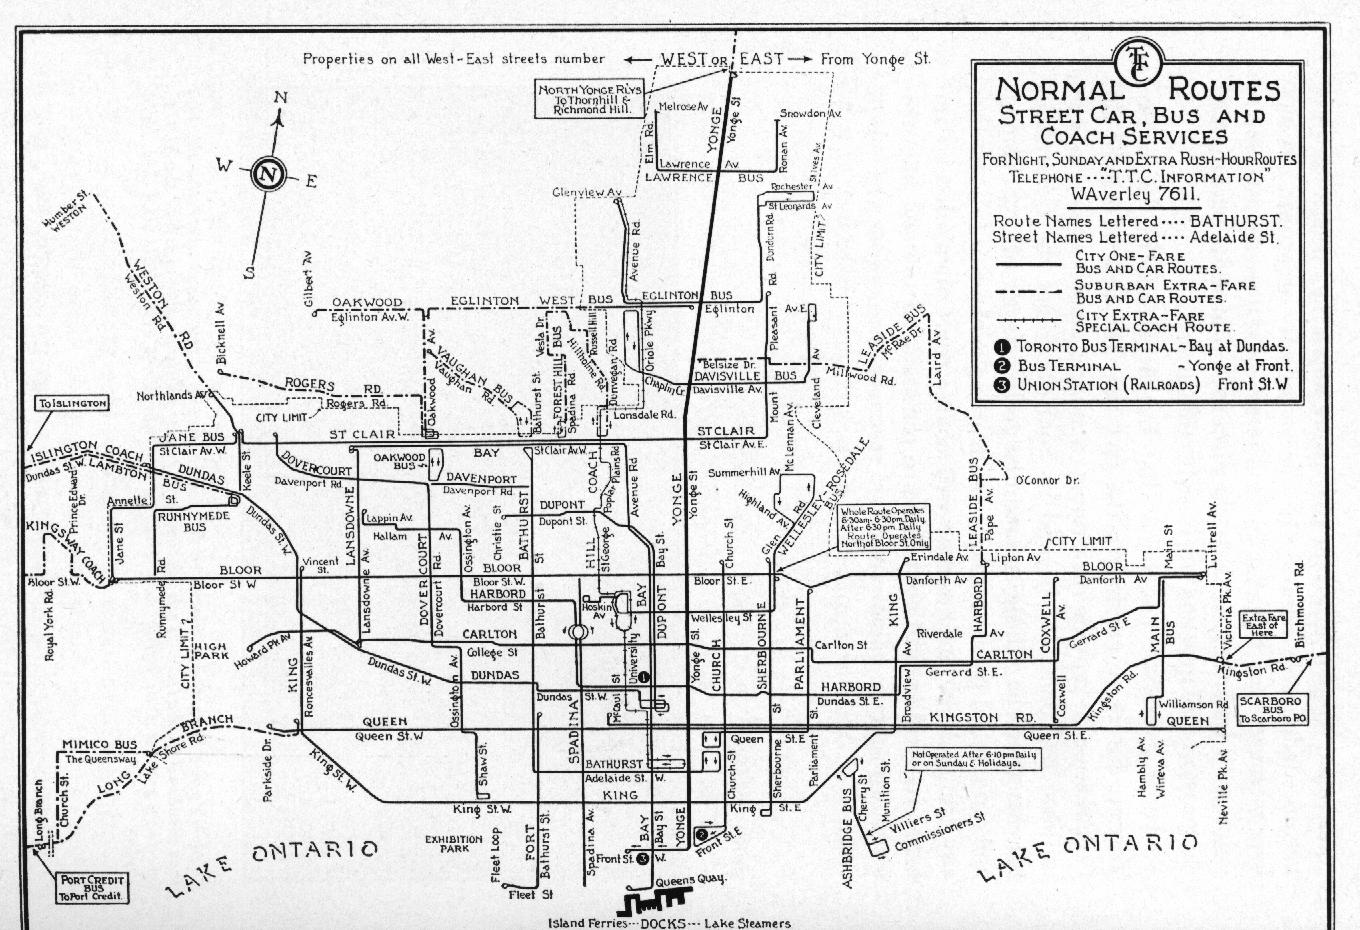 Black And White Subway Map.Ttc System Maps Transit Toronto Content